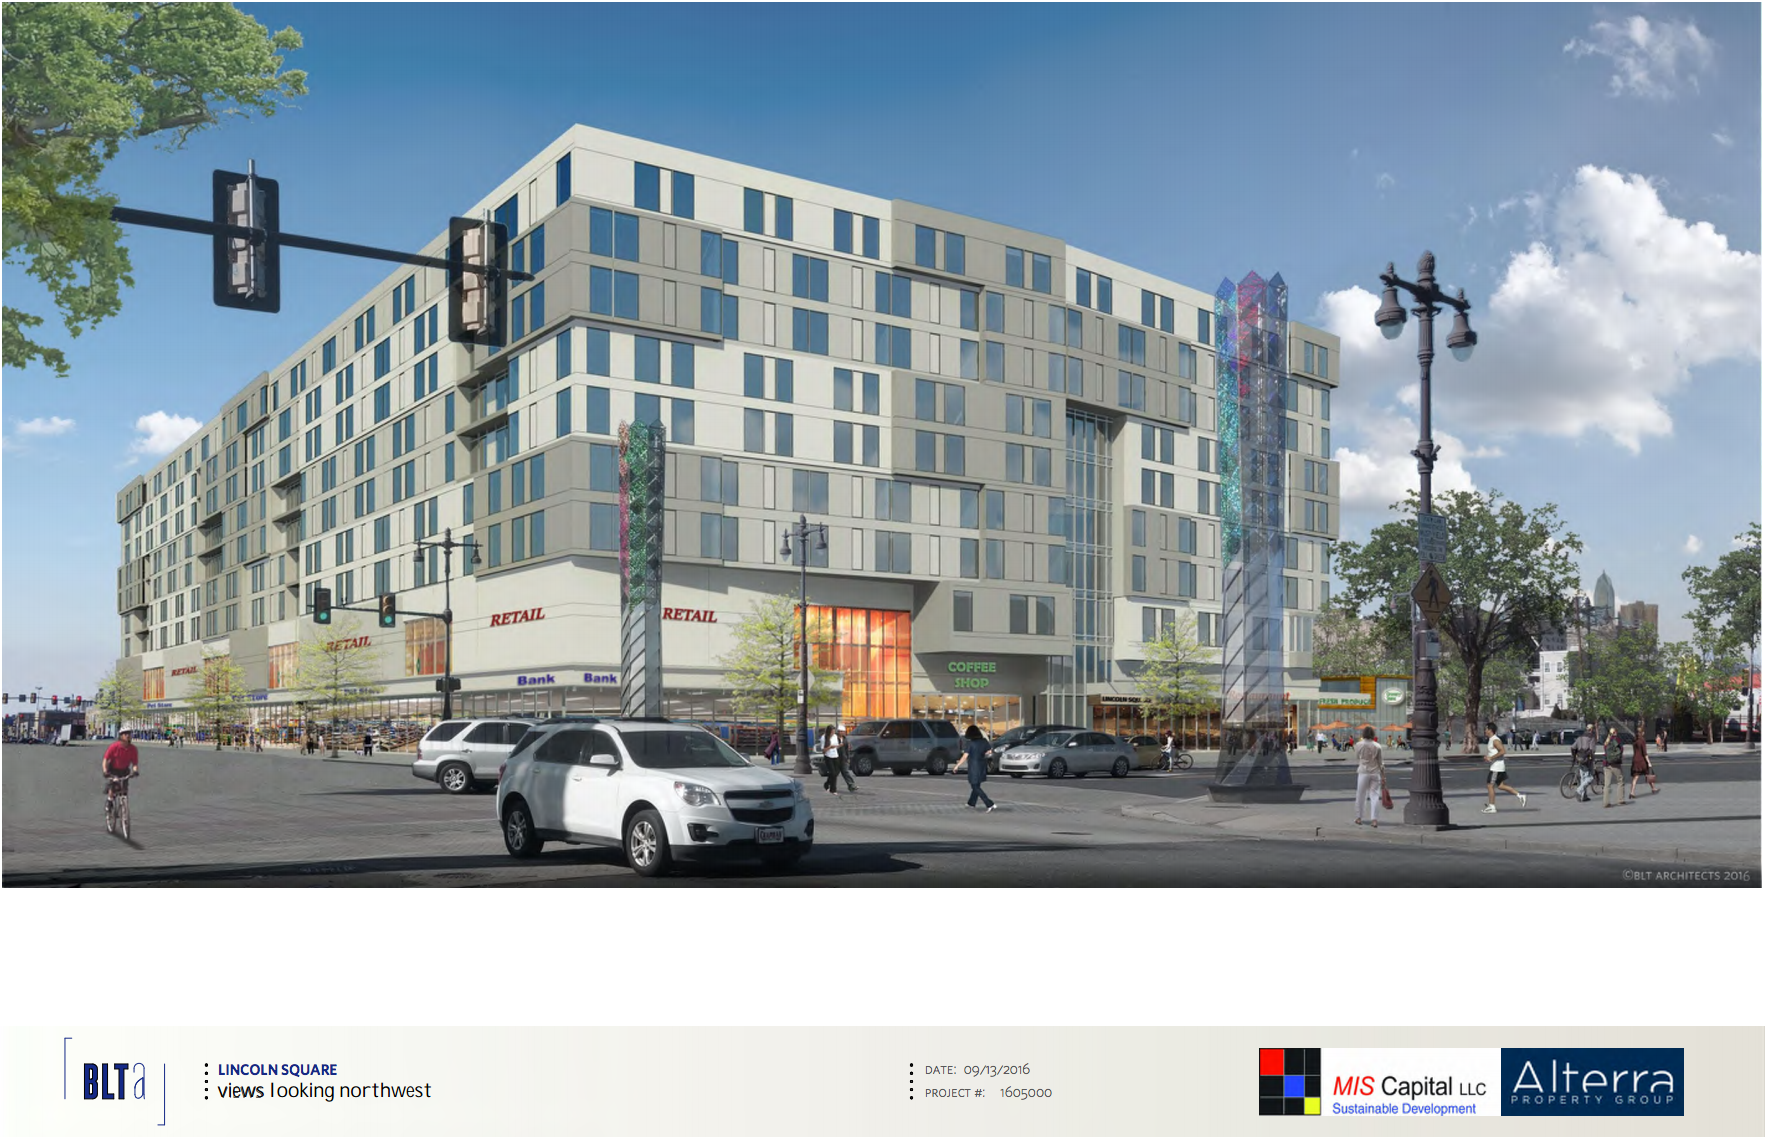 Lincoln Square: View looking NW | BLTArchitects, Nov. 2016 CDR presentation